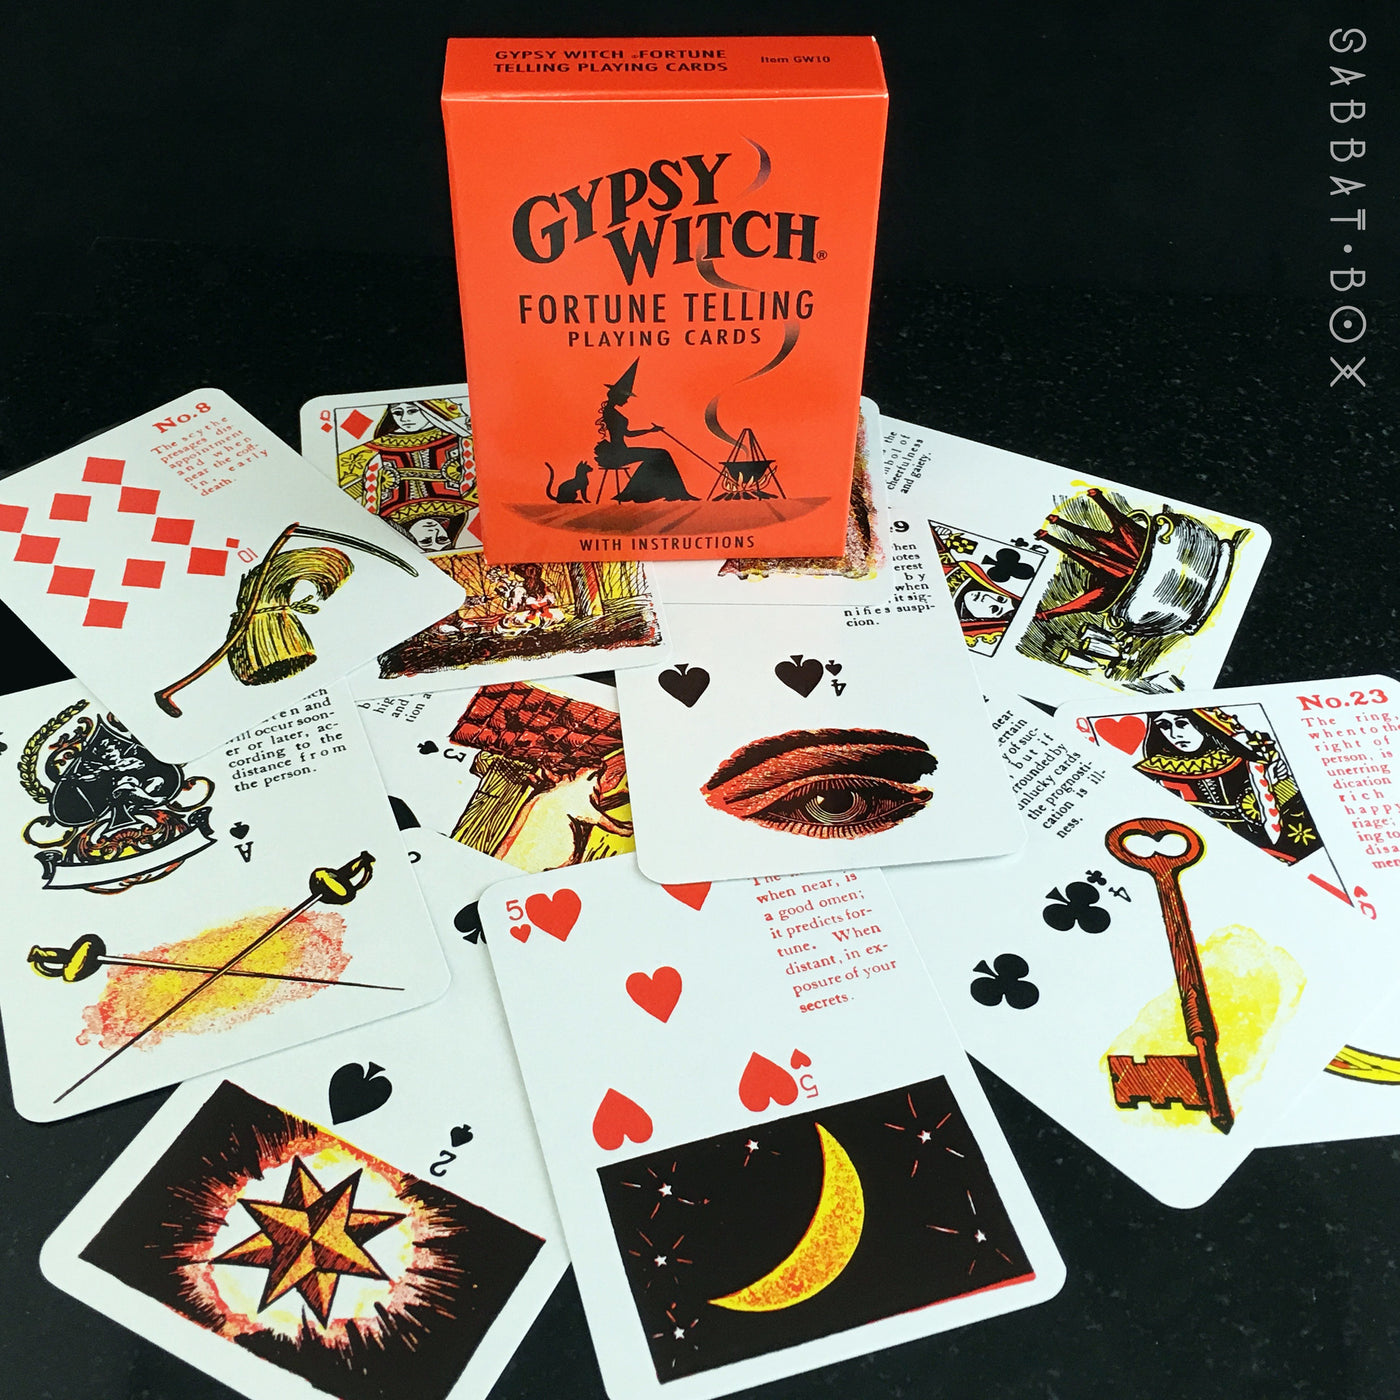 Gypsy Witch Fortune Telling Cards ...